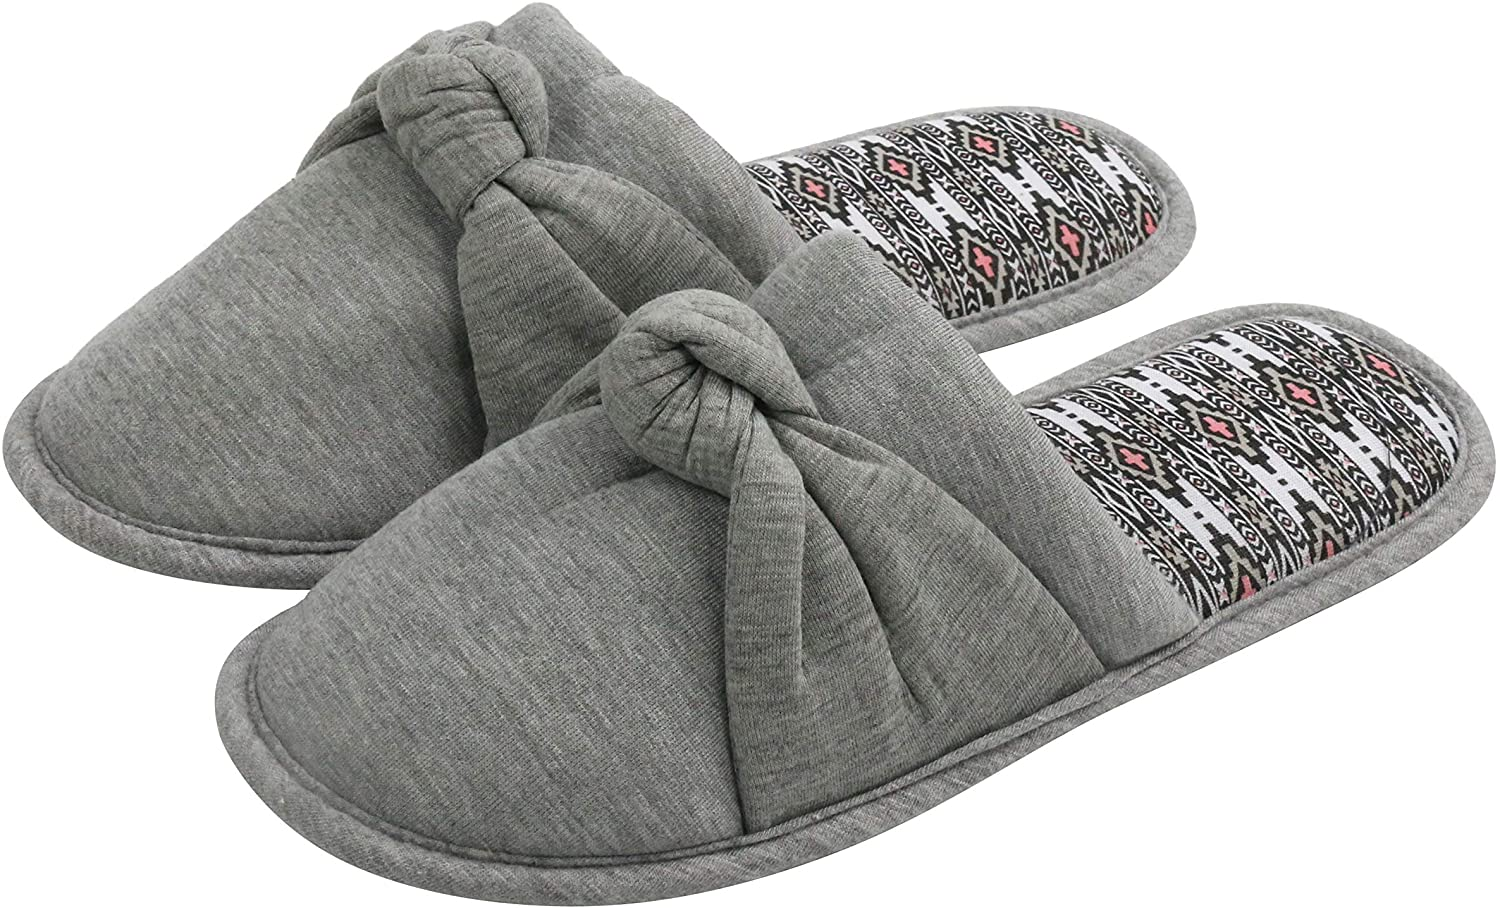 Komyufa Classic Gray Cozy Memory Foam Home Slippers for Women Girls with Bow-tie Non-Slip Rubber Sole House Shoes Indoor & Outdoor